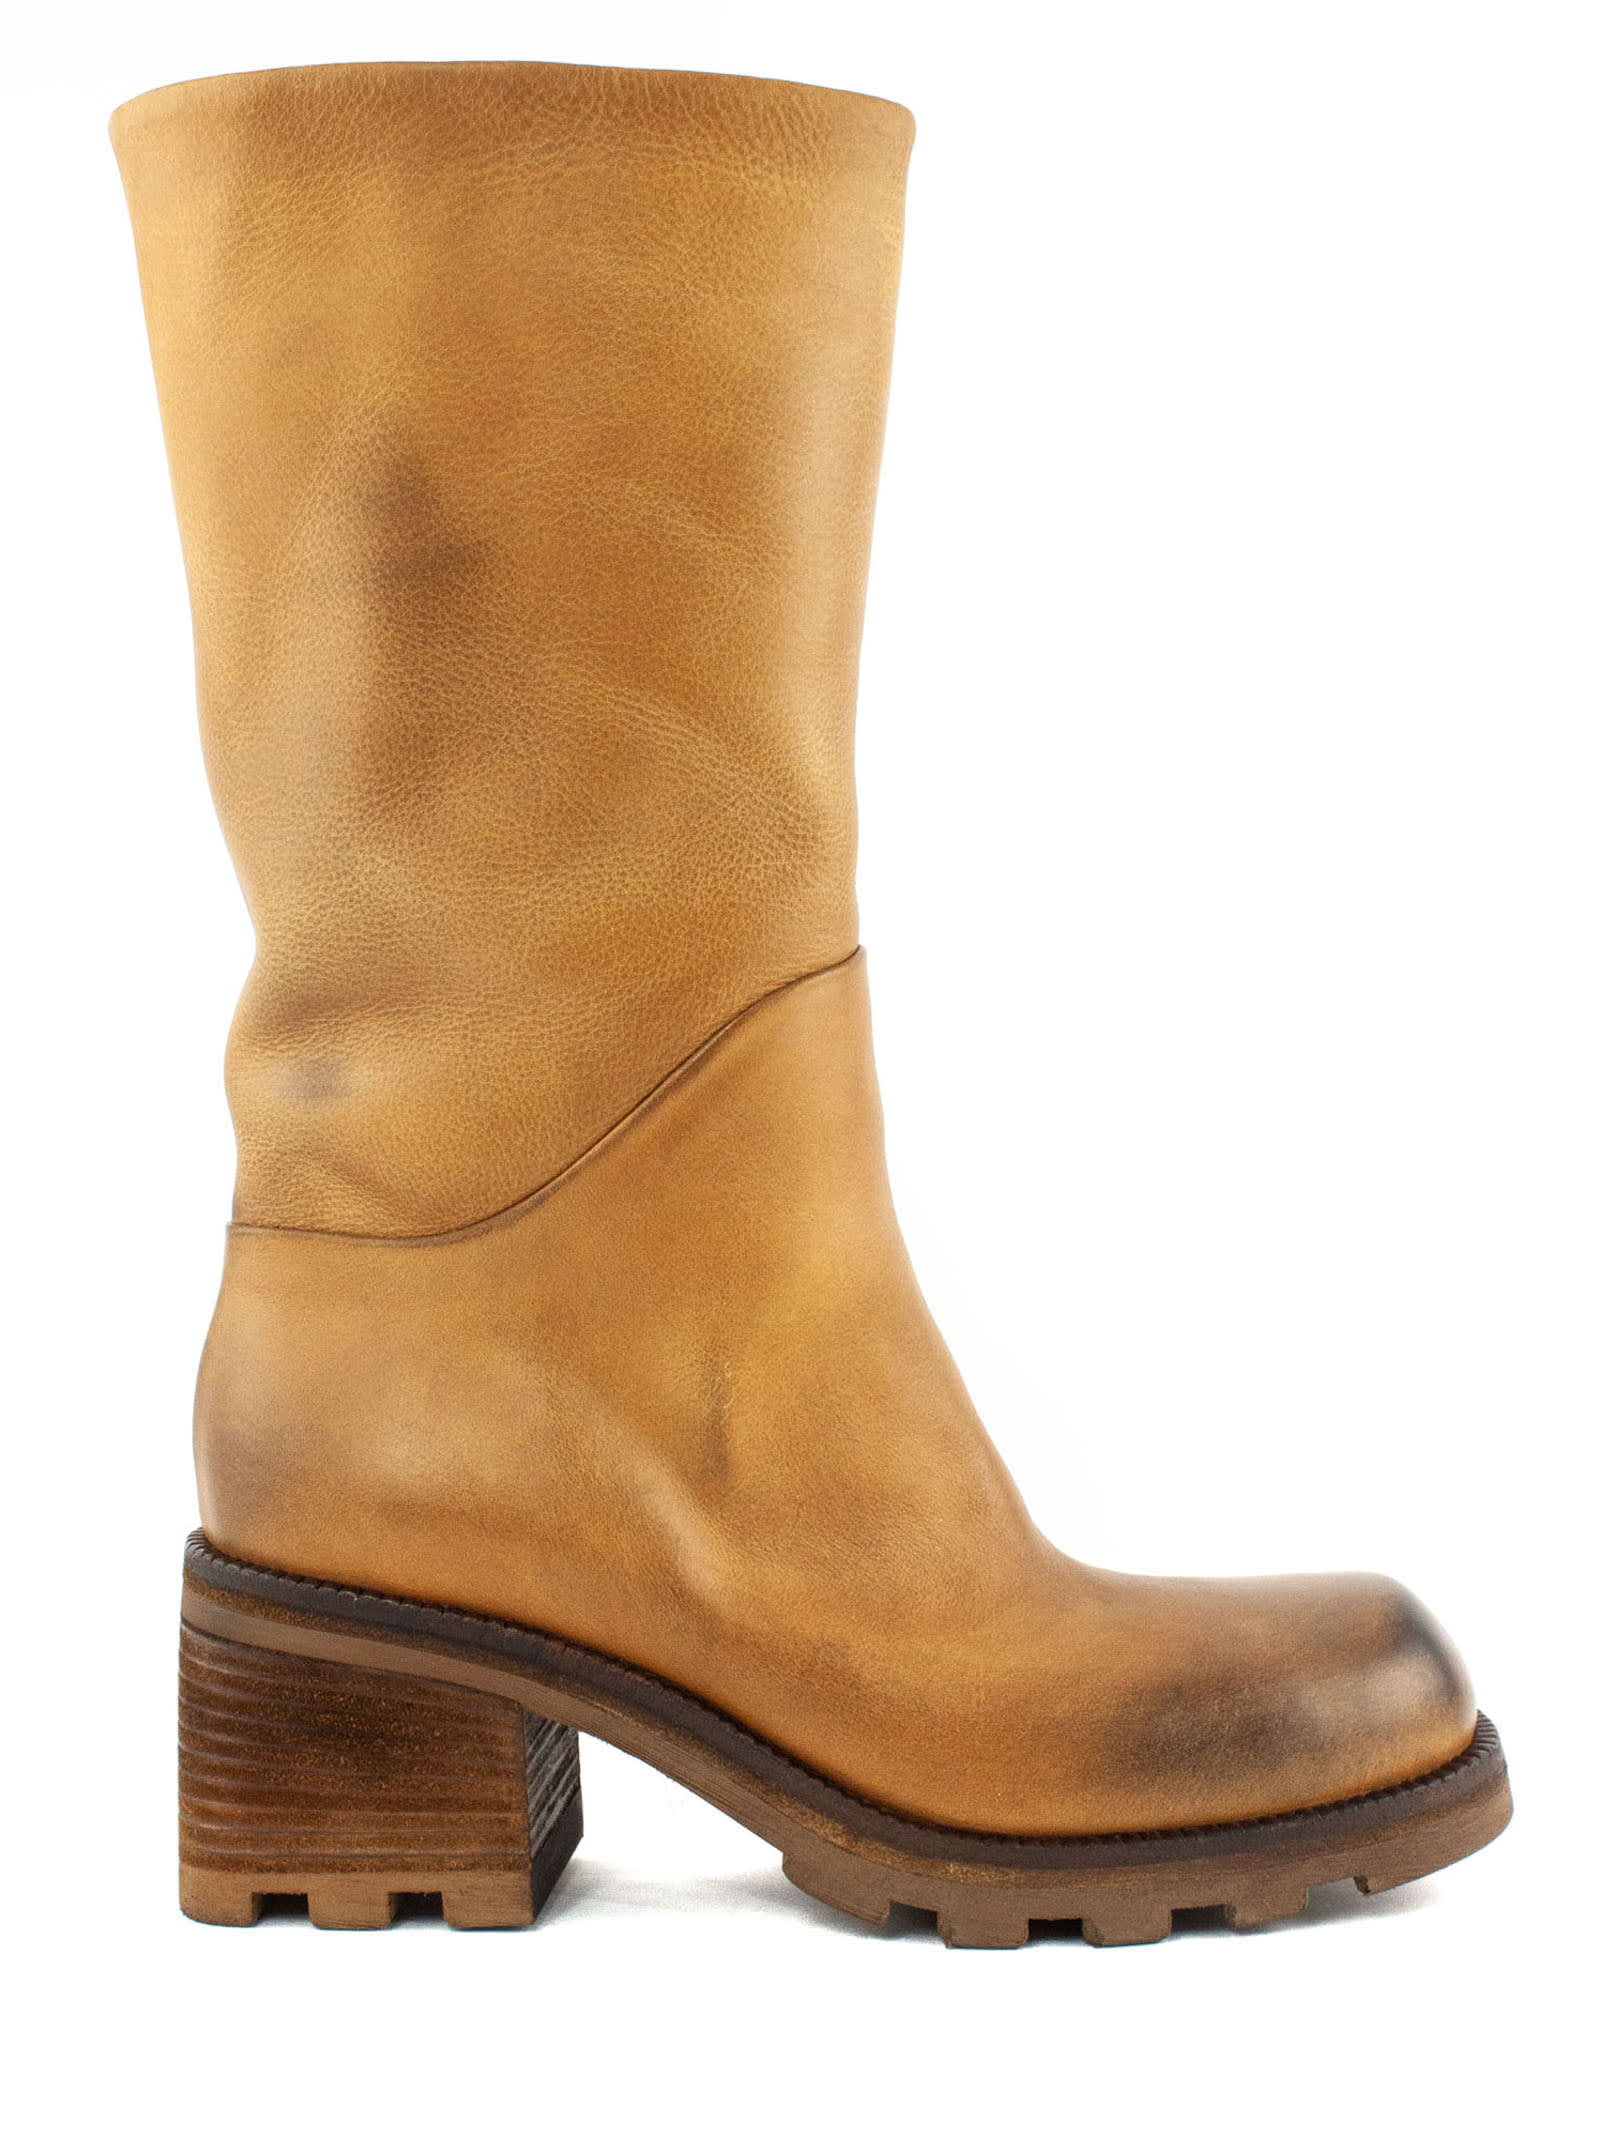 Boot In Light Brown Leather